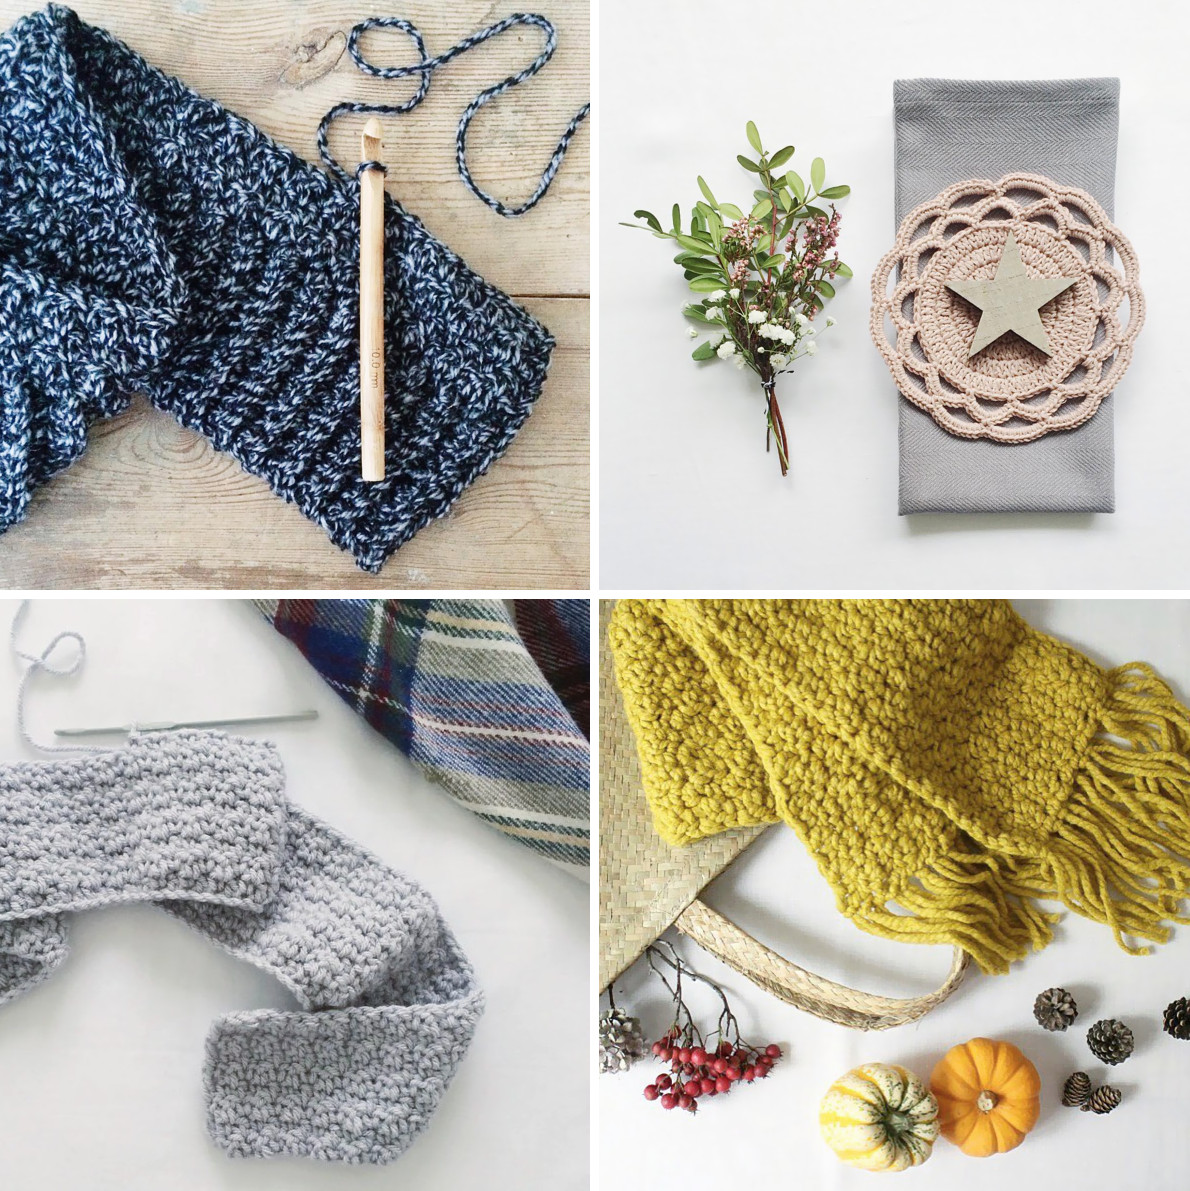 For the love of Making | Seeds and Stitches blog